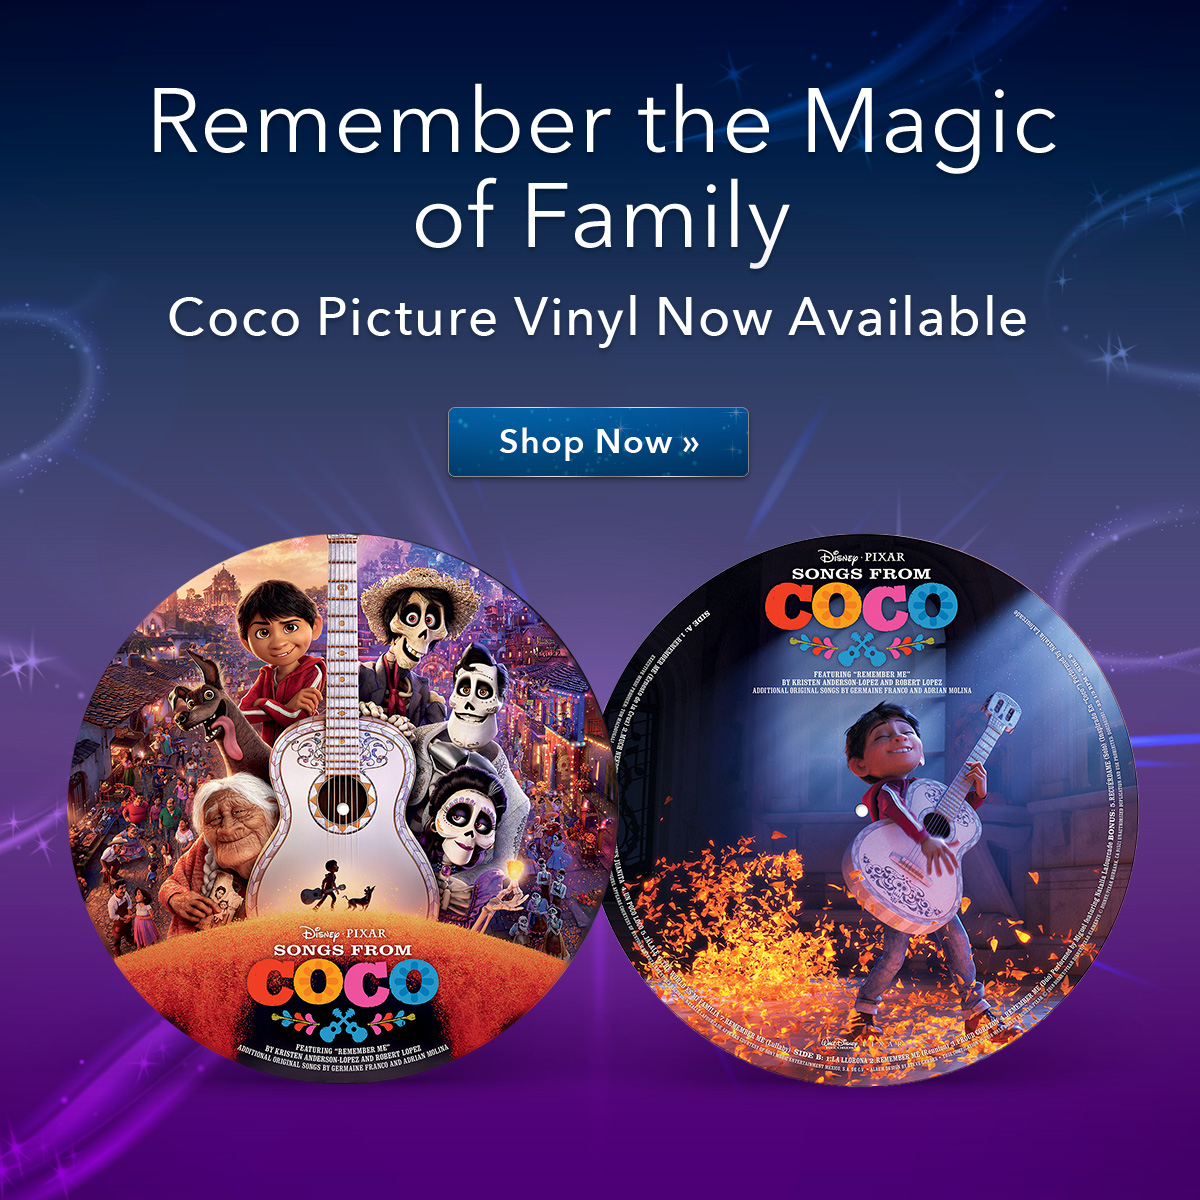 Coco Picture Vinyl Now Available